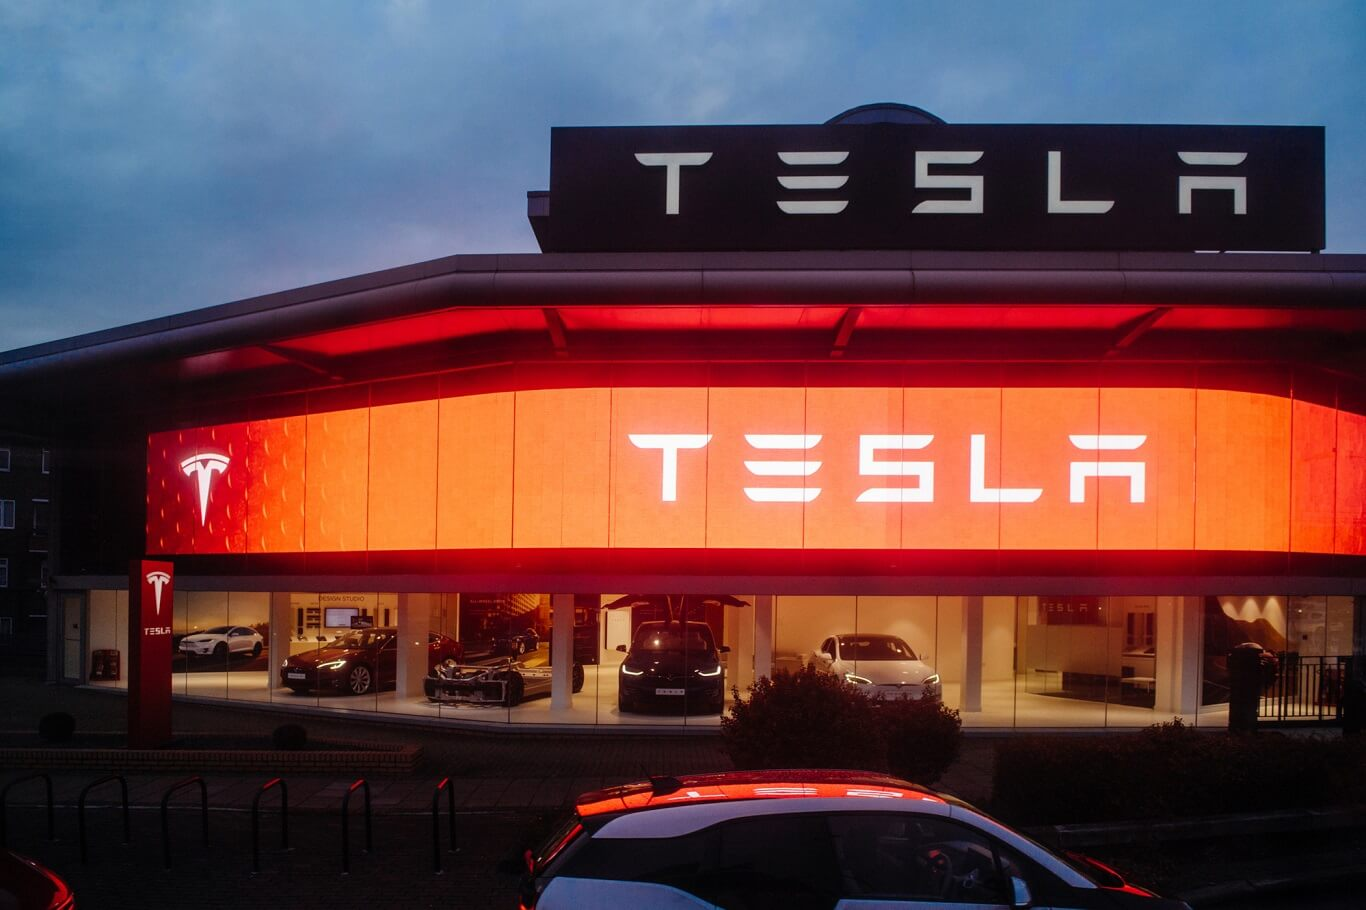 Tesla relocated from California to Austin, Texas